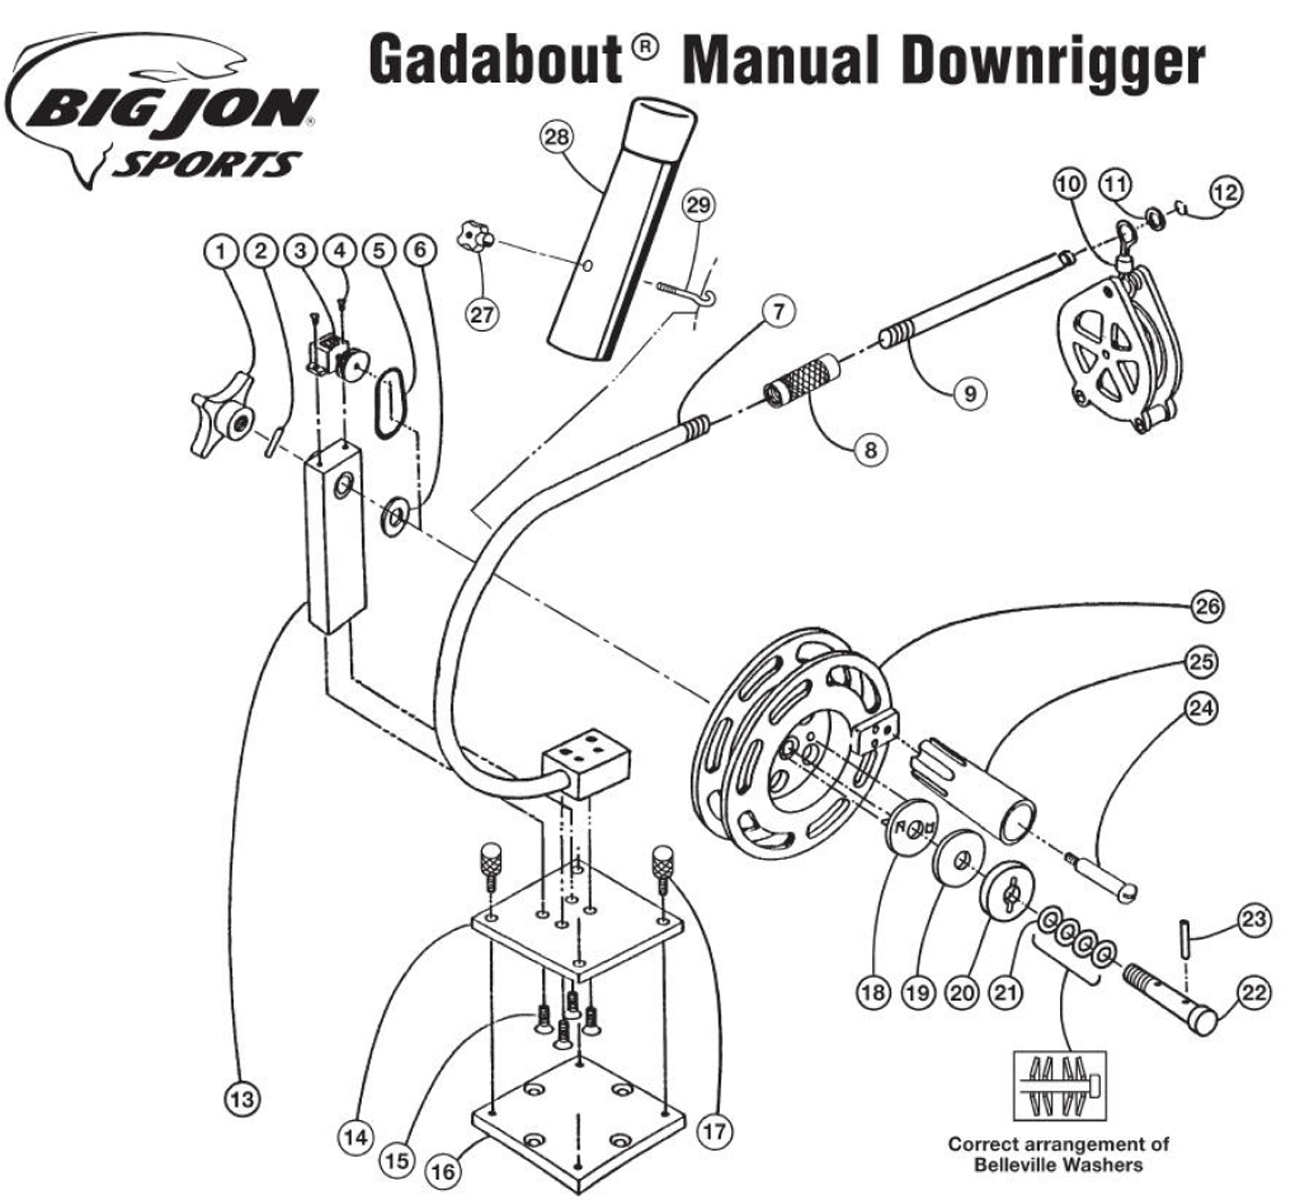 order big jon gadabout manual downrigger parts online from